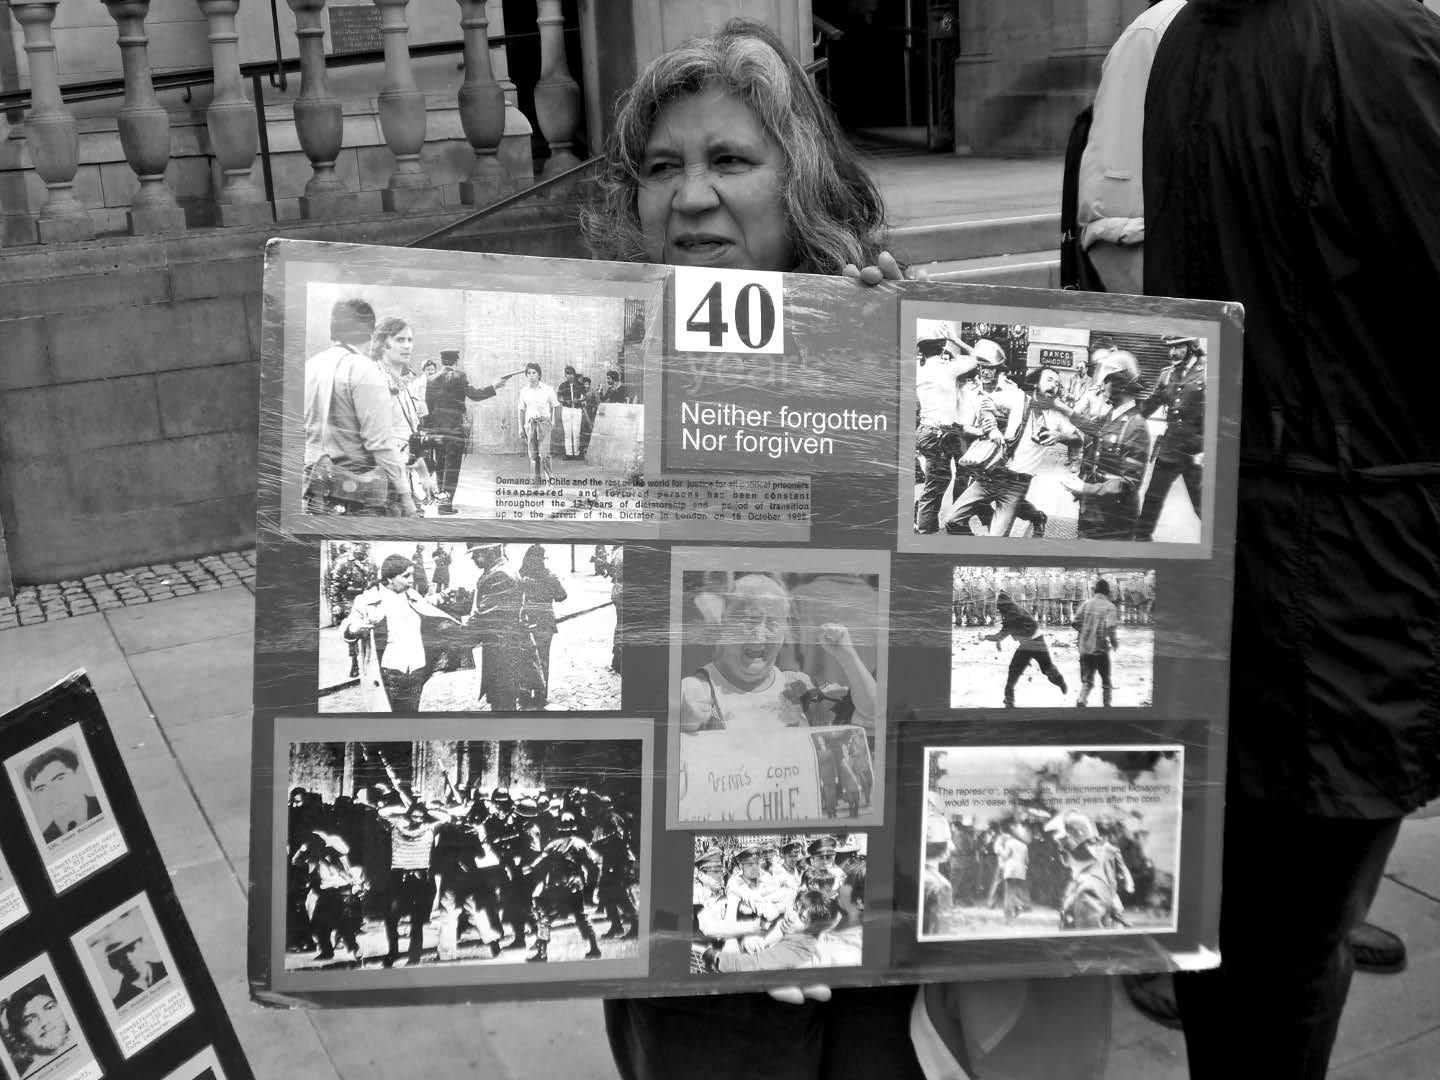 Isilda Lang remembering the disappeared with a graphic placard on the town hall steps